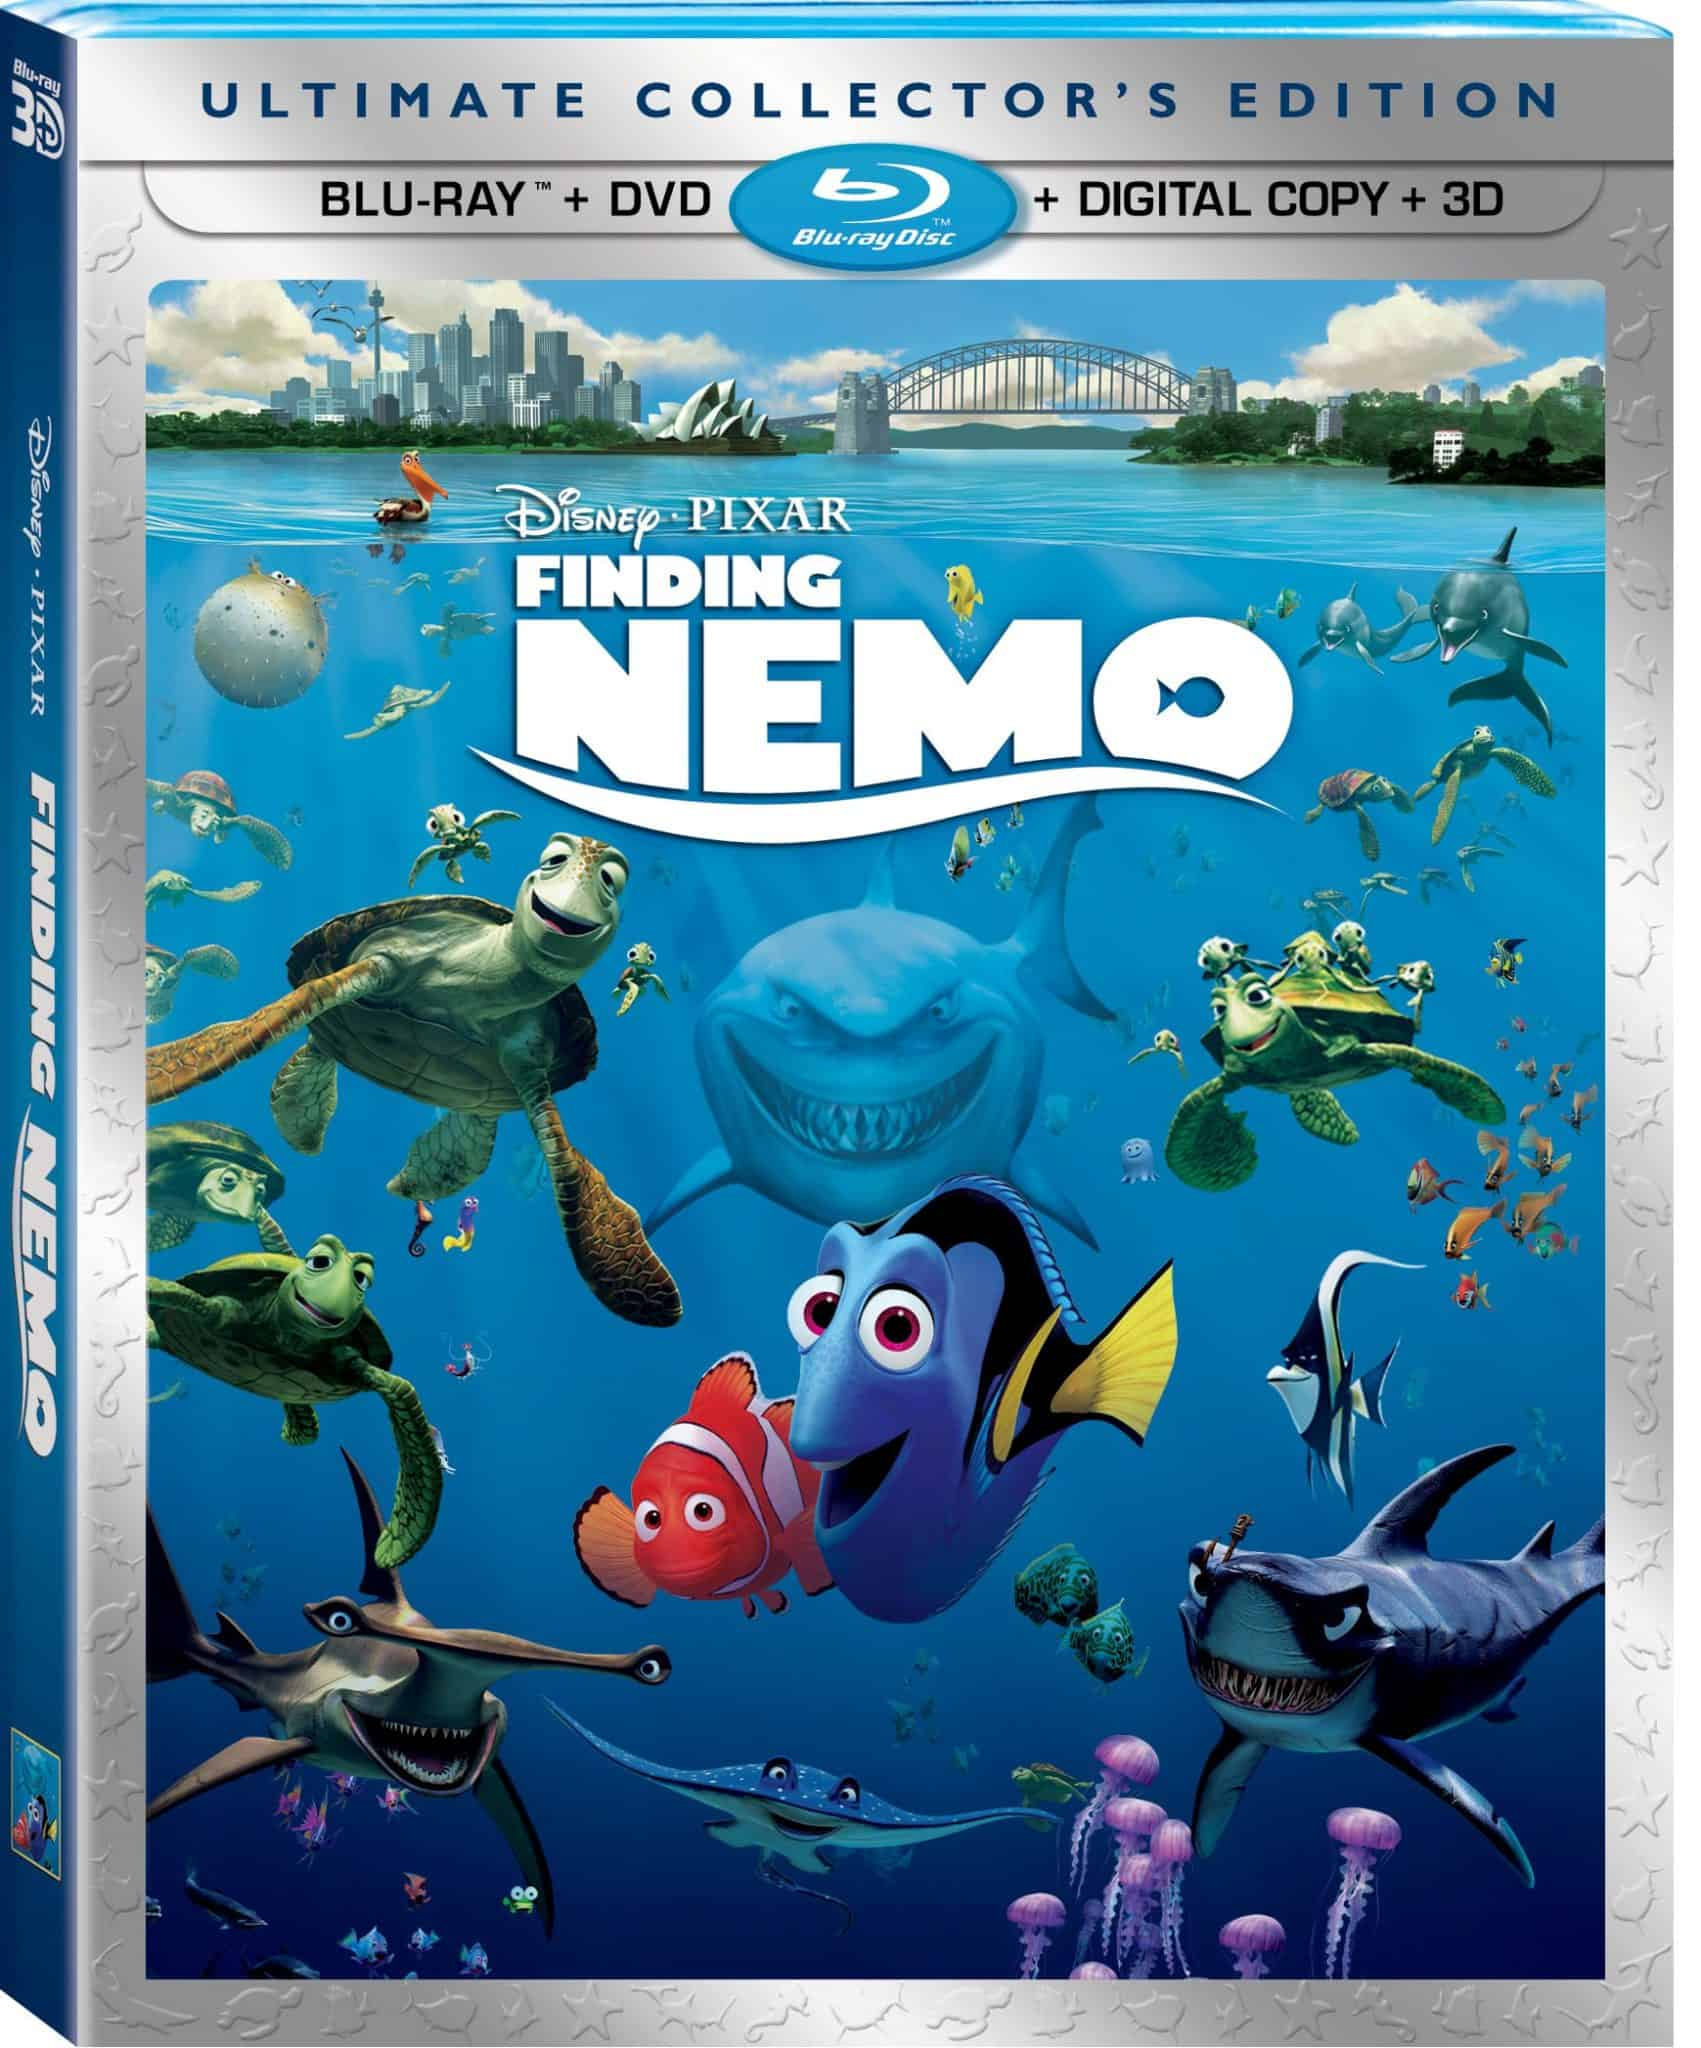 Animated family films finding nemo on blu ray 2d 3d digital